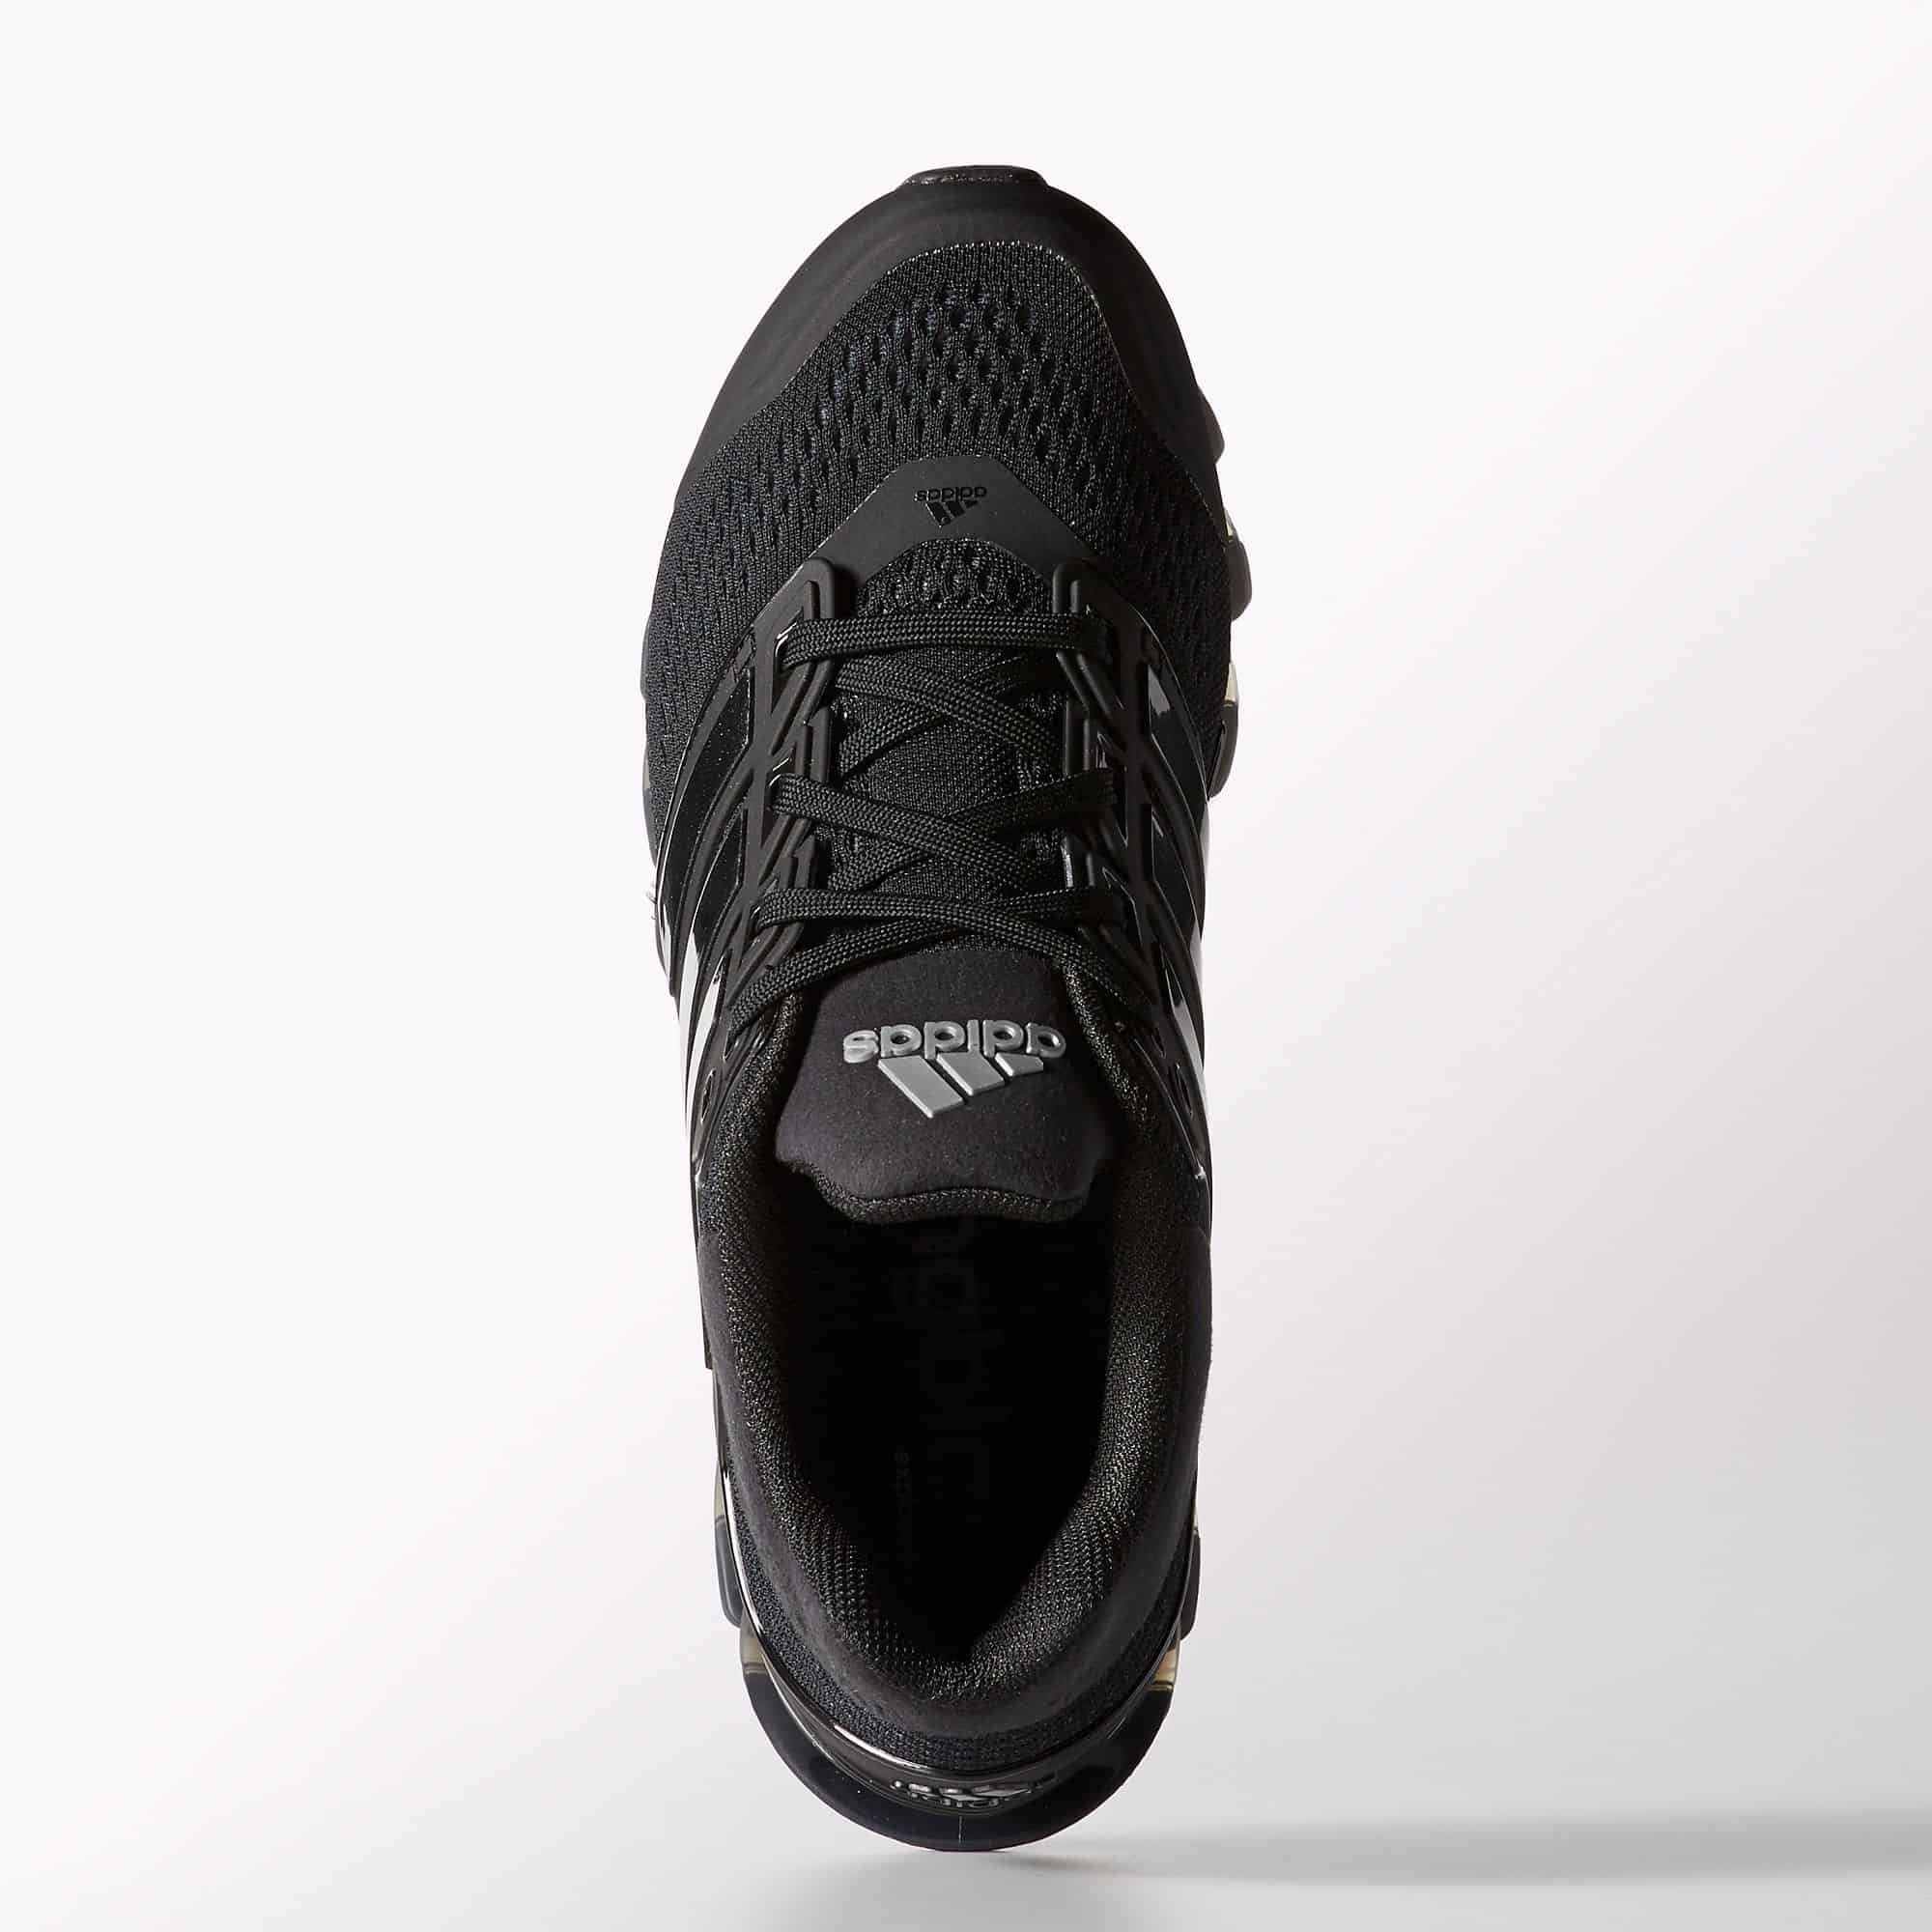 Adidas Springblade Running Shoes Top View